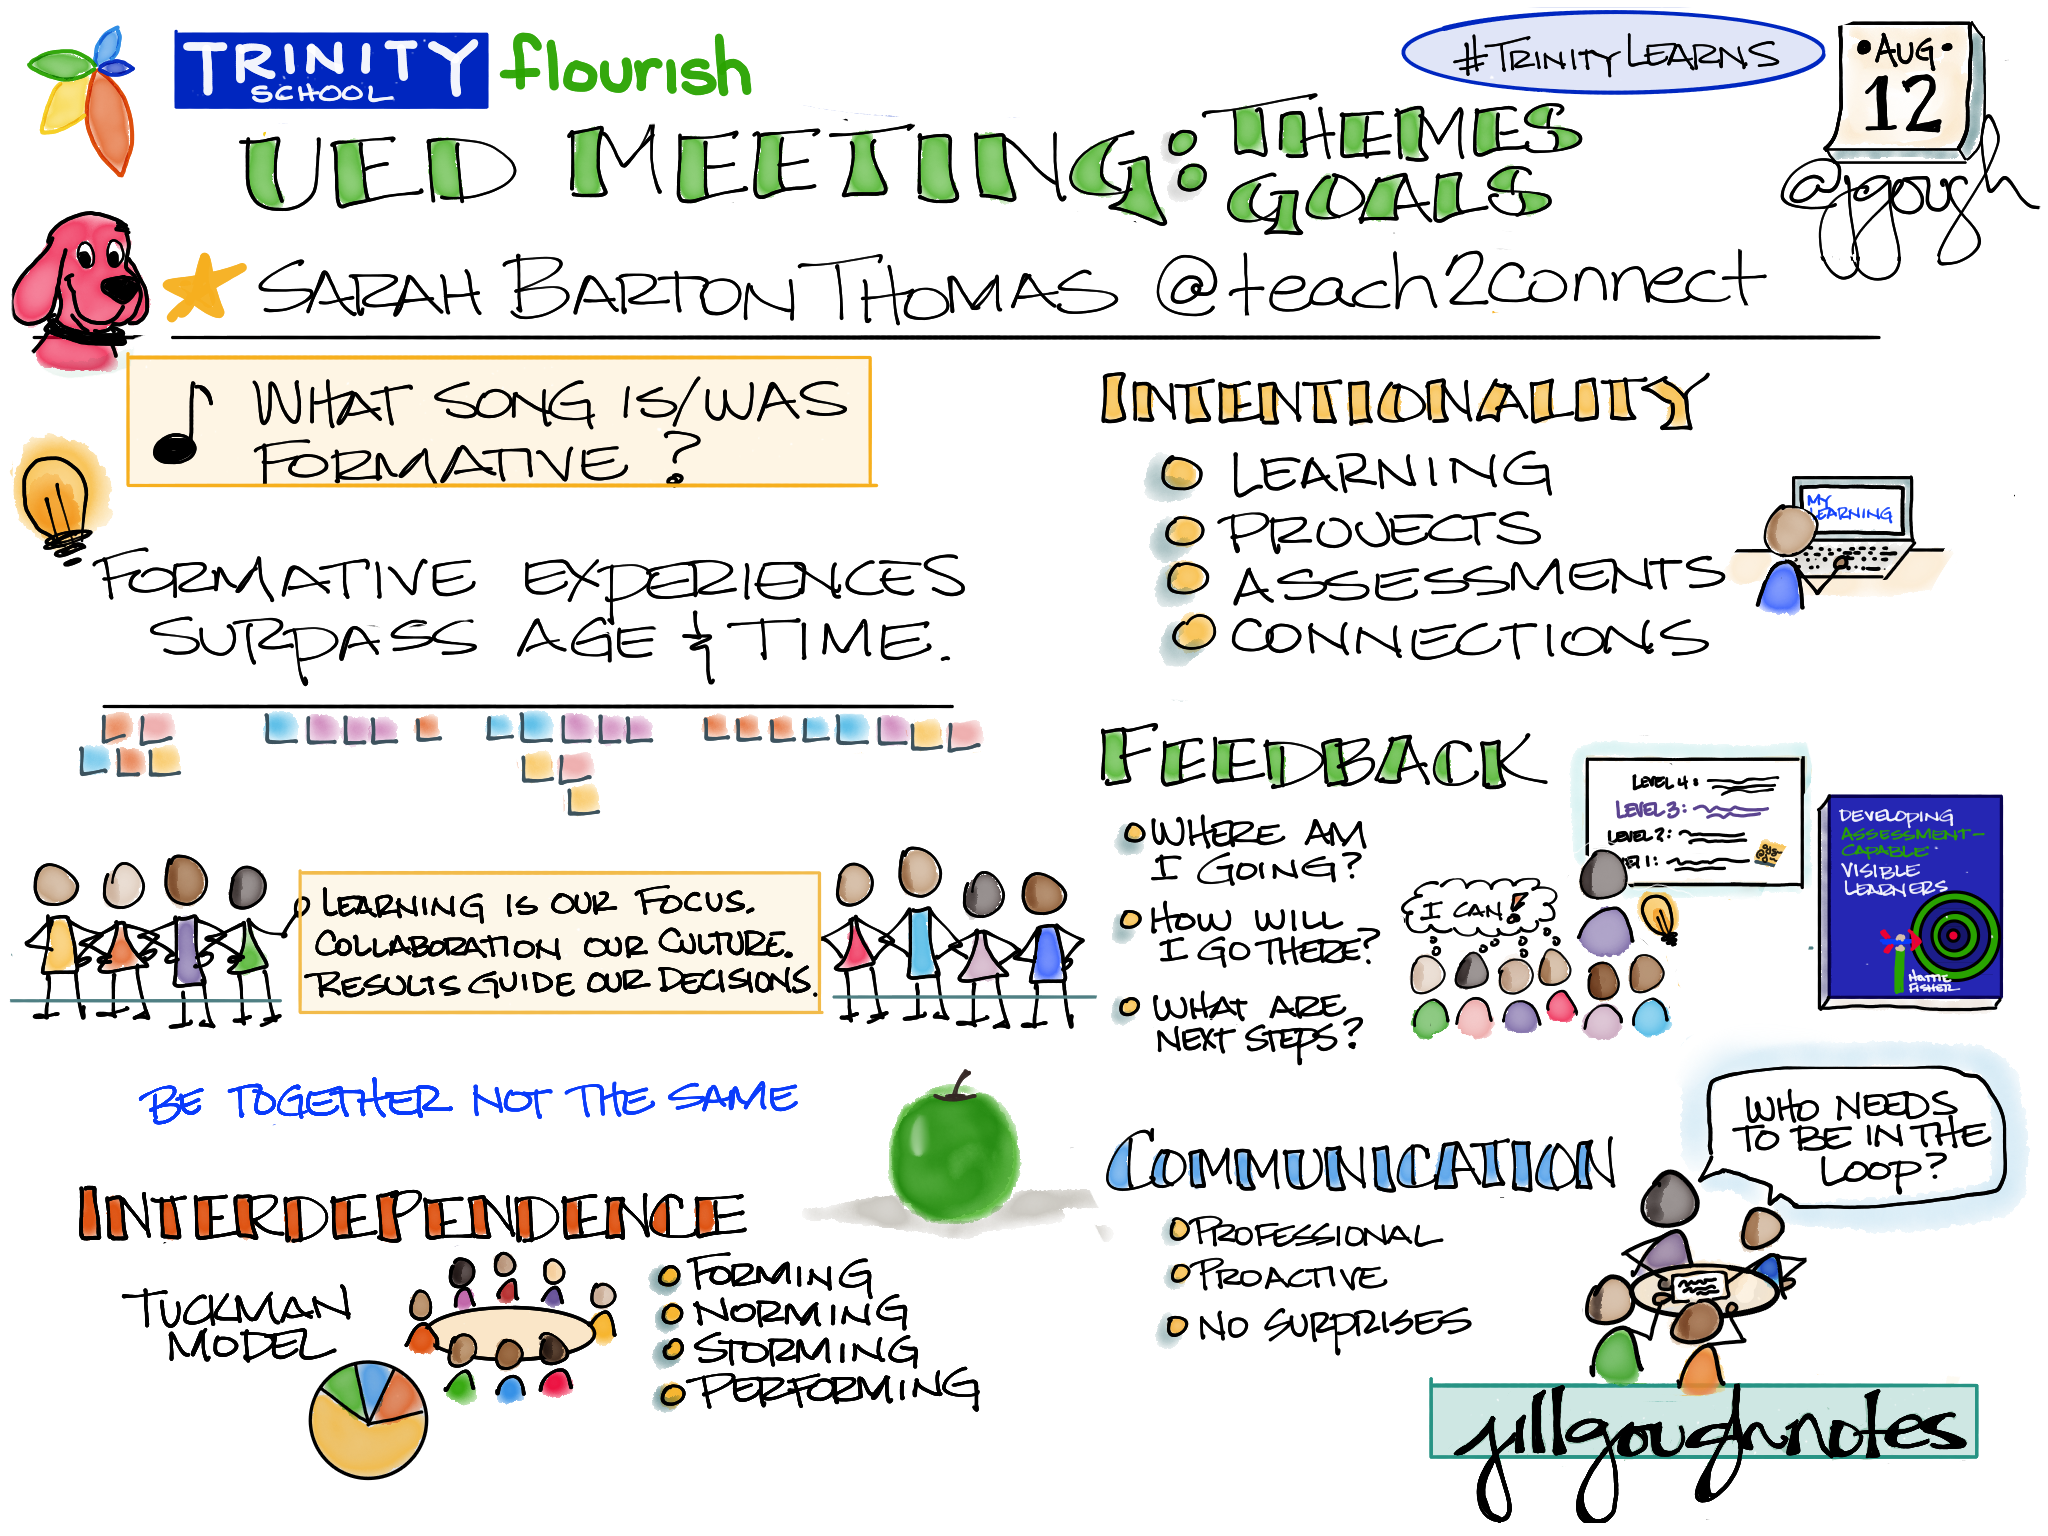 Sharing my #Sketchnotes from @teach2connect's #TrinityLearns #UED Themes and Goals session. Interdependence, Intentionality, Feedback, Communication